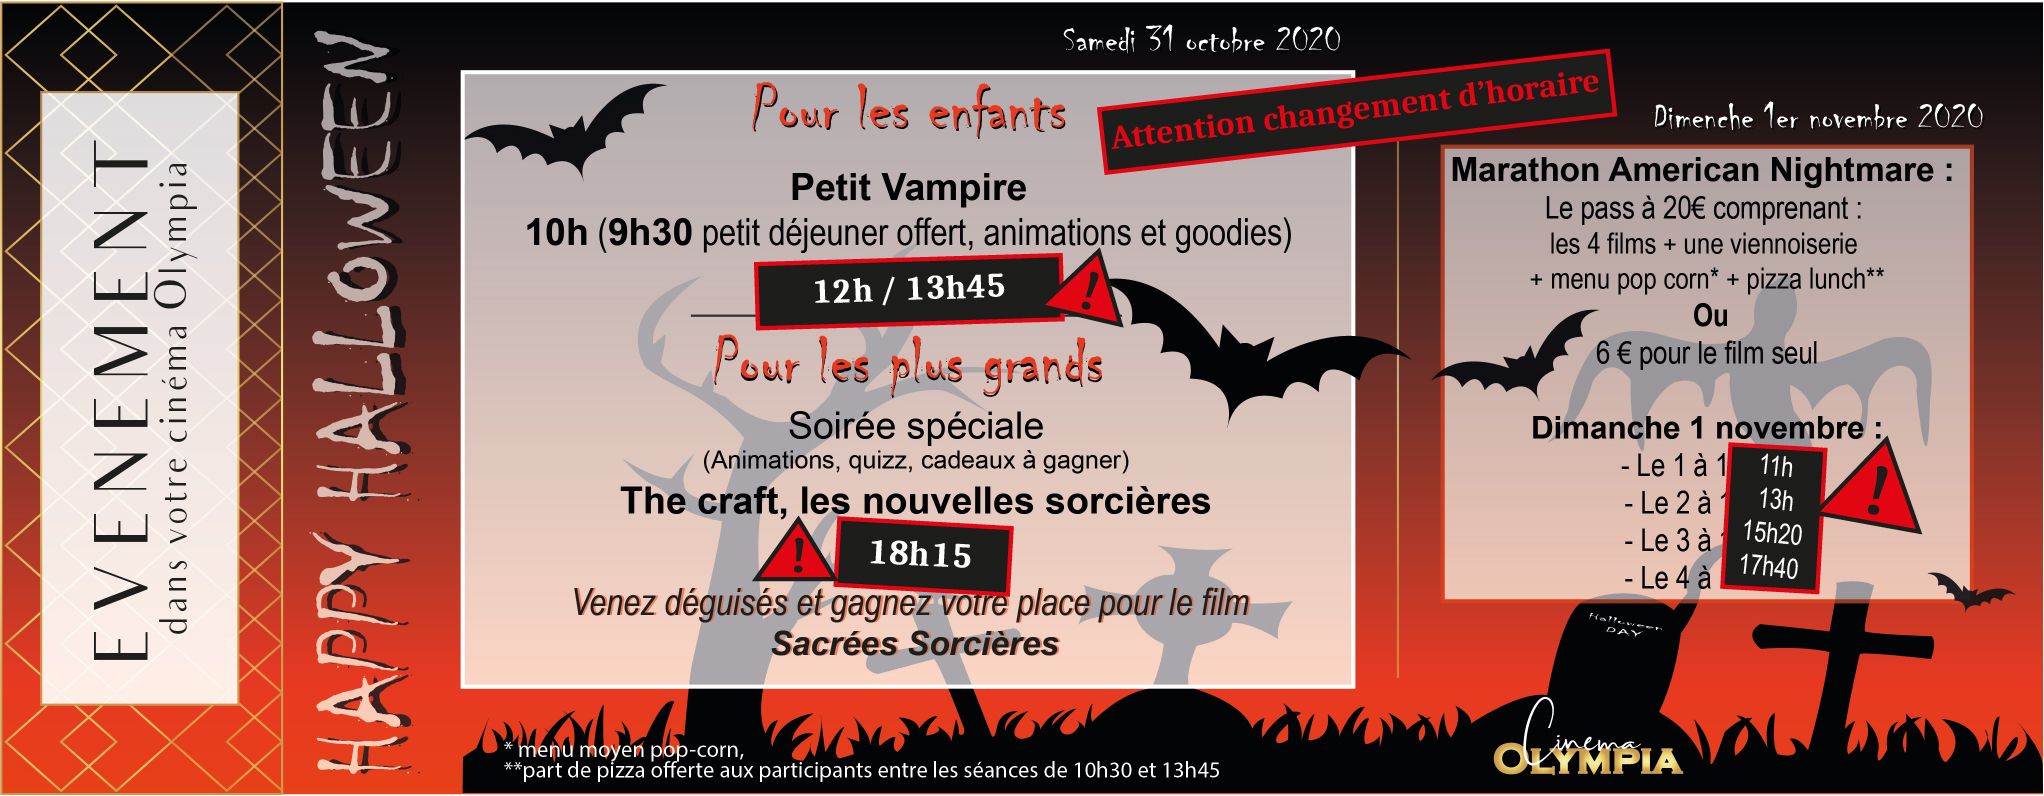 cinema Olympia Cannes Halloween Events